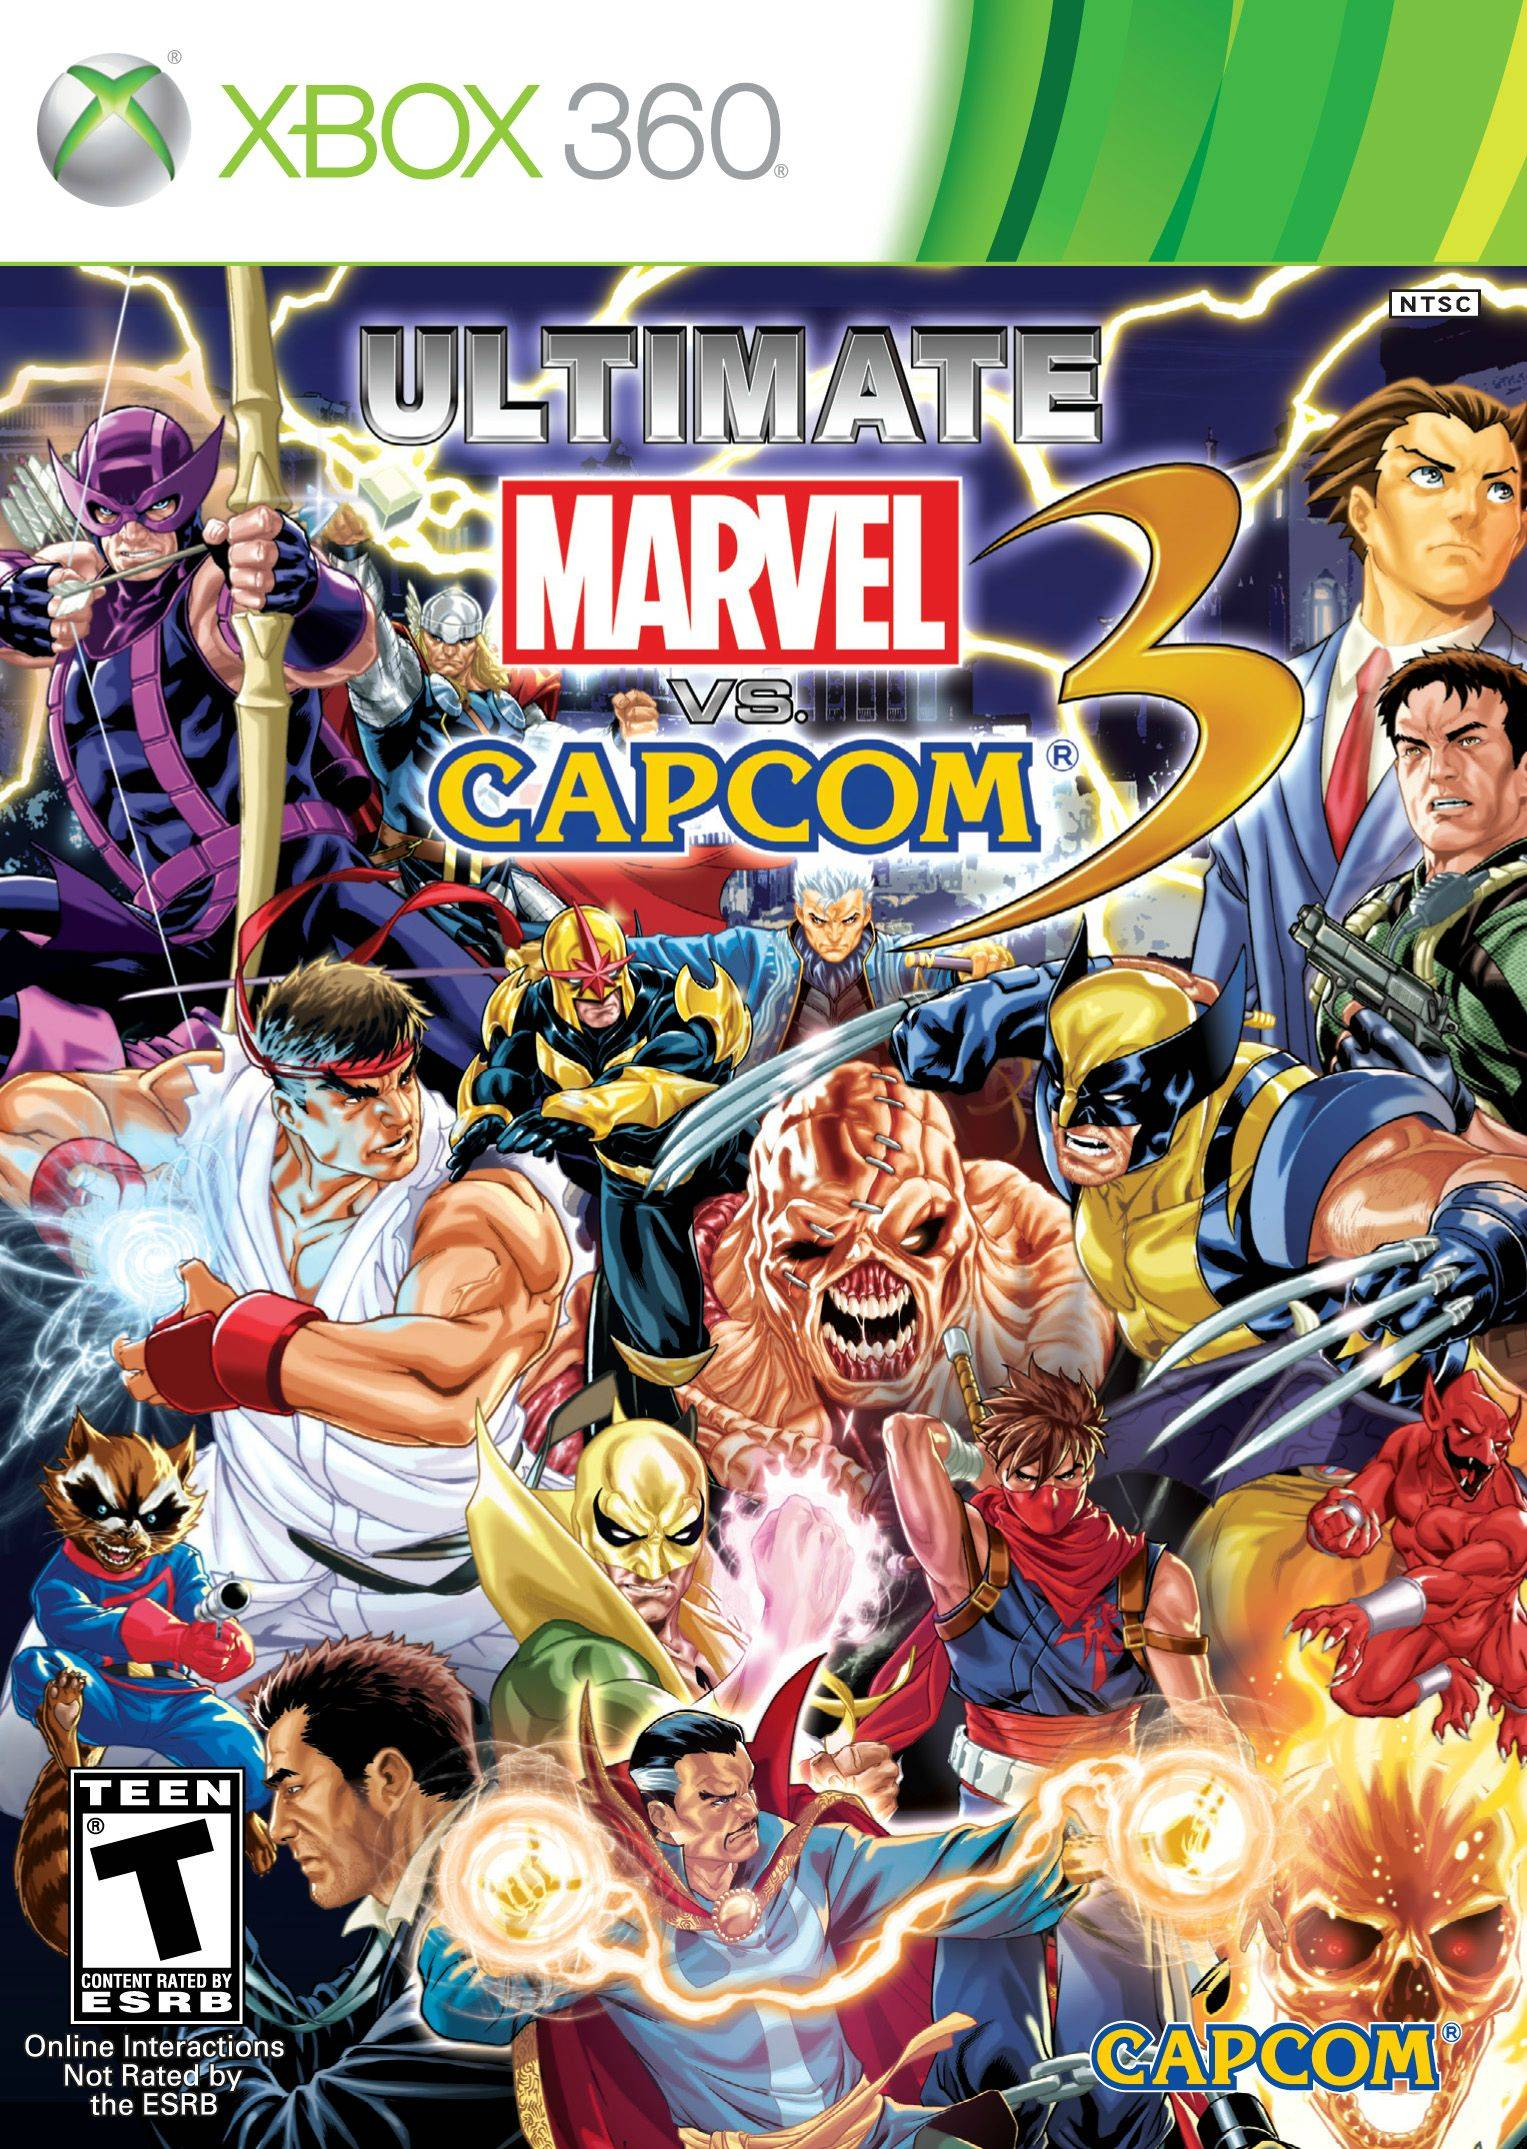 Marvel vs. Capcom 3 Art Gallery 16 out of 16 image gallery